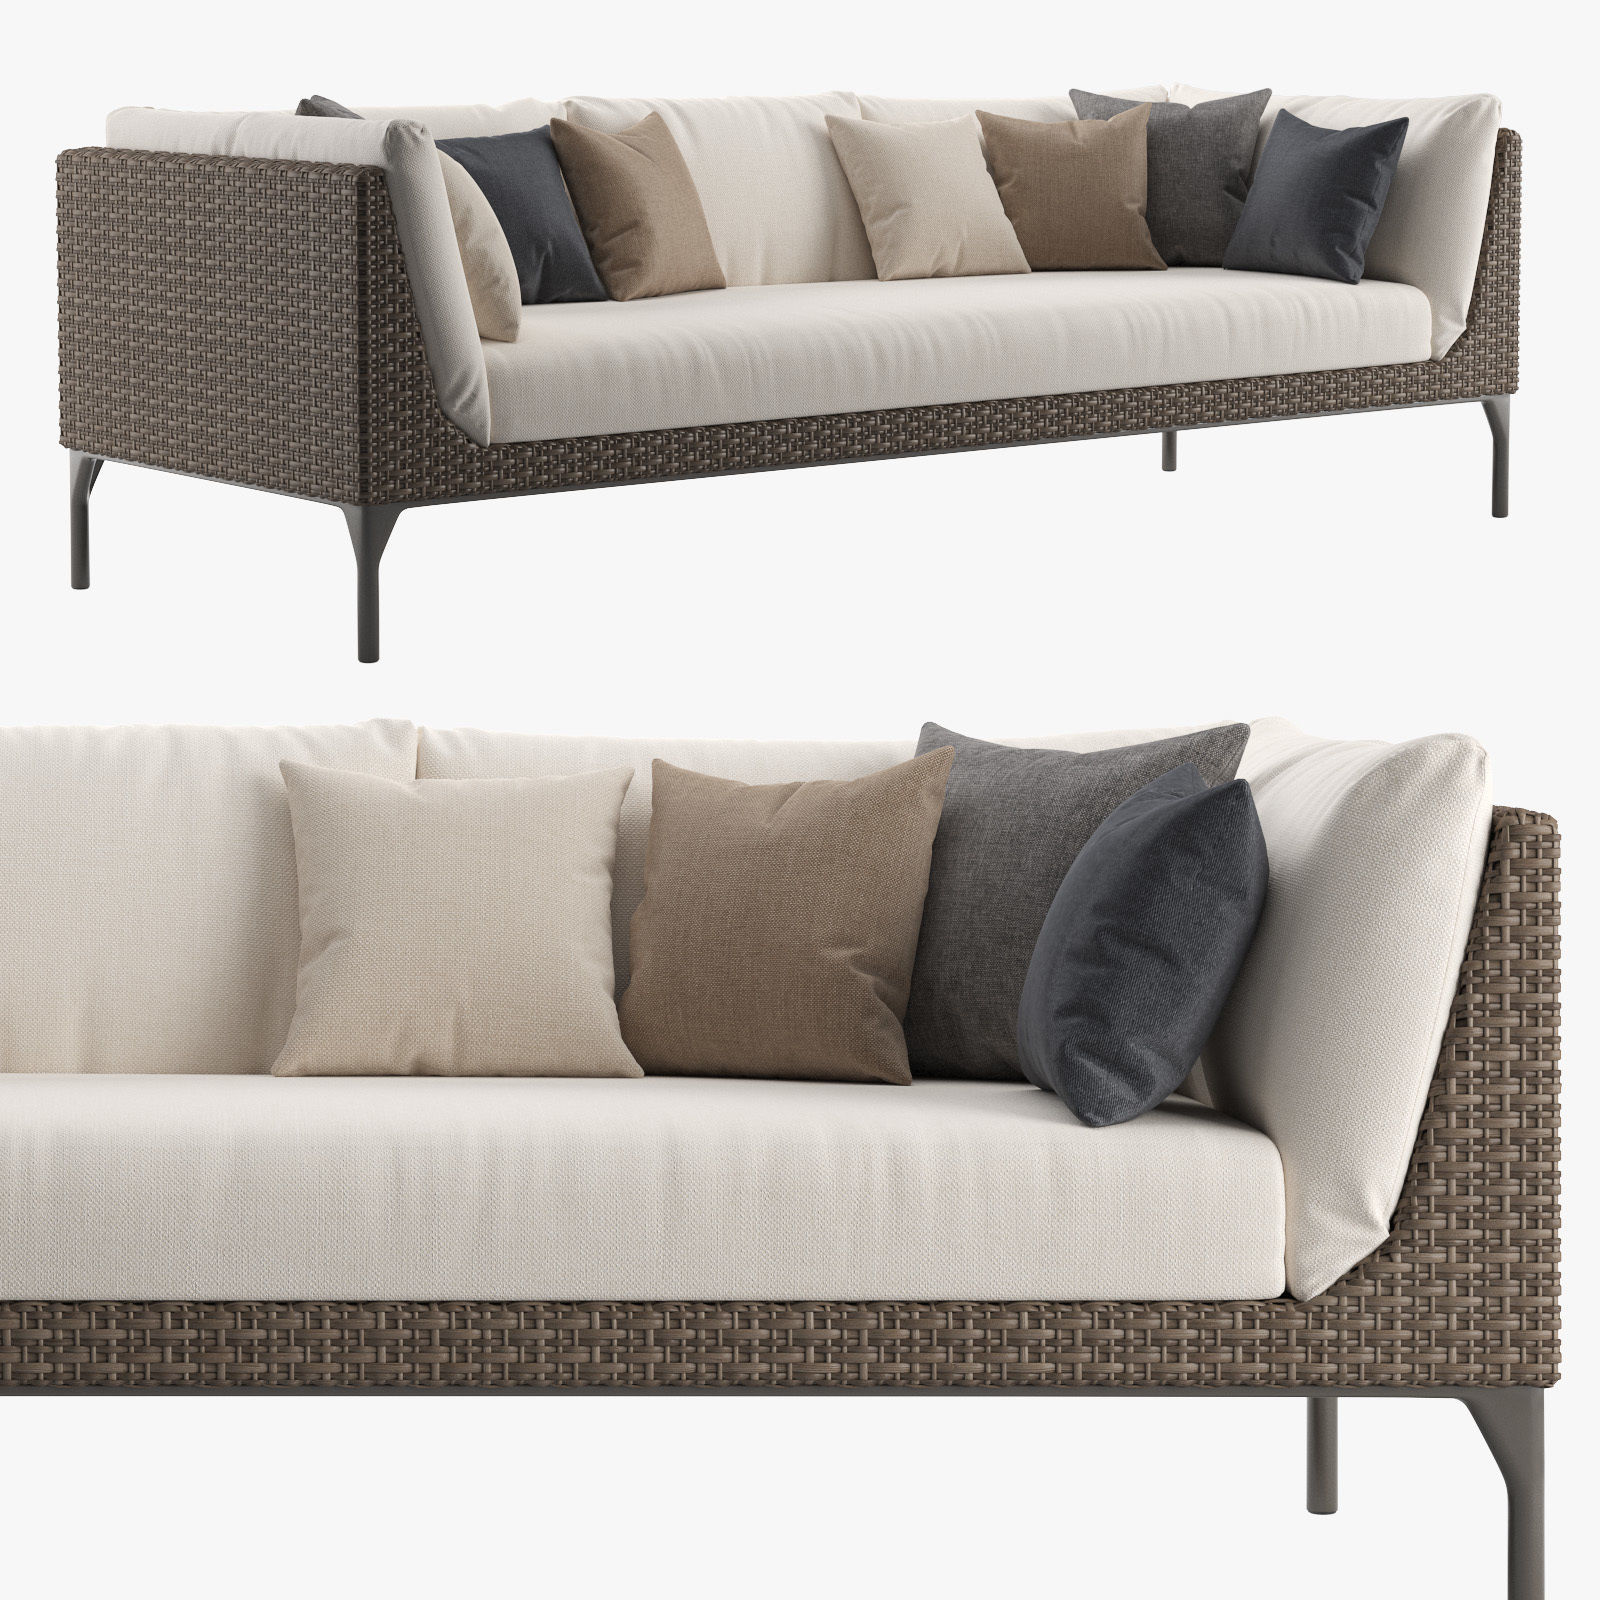 Dedon MU 4-seater sofa outdoor